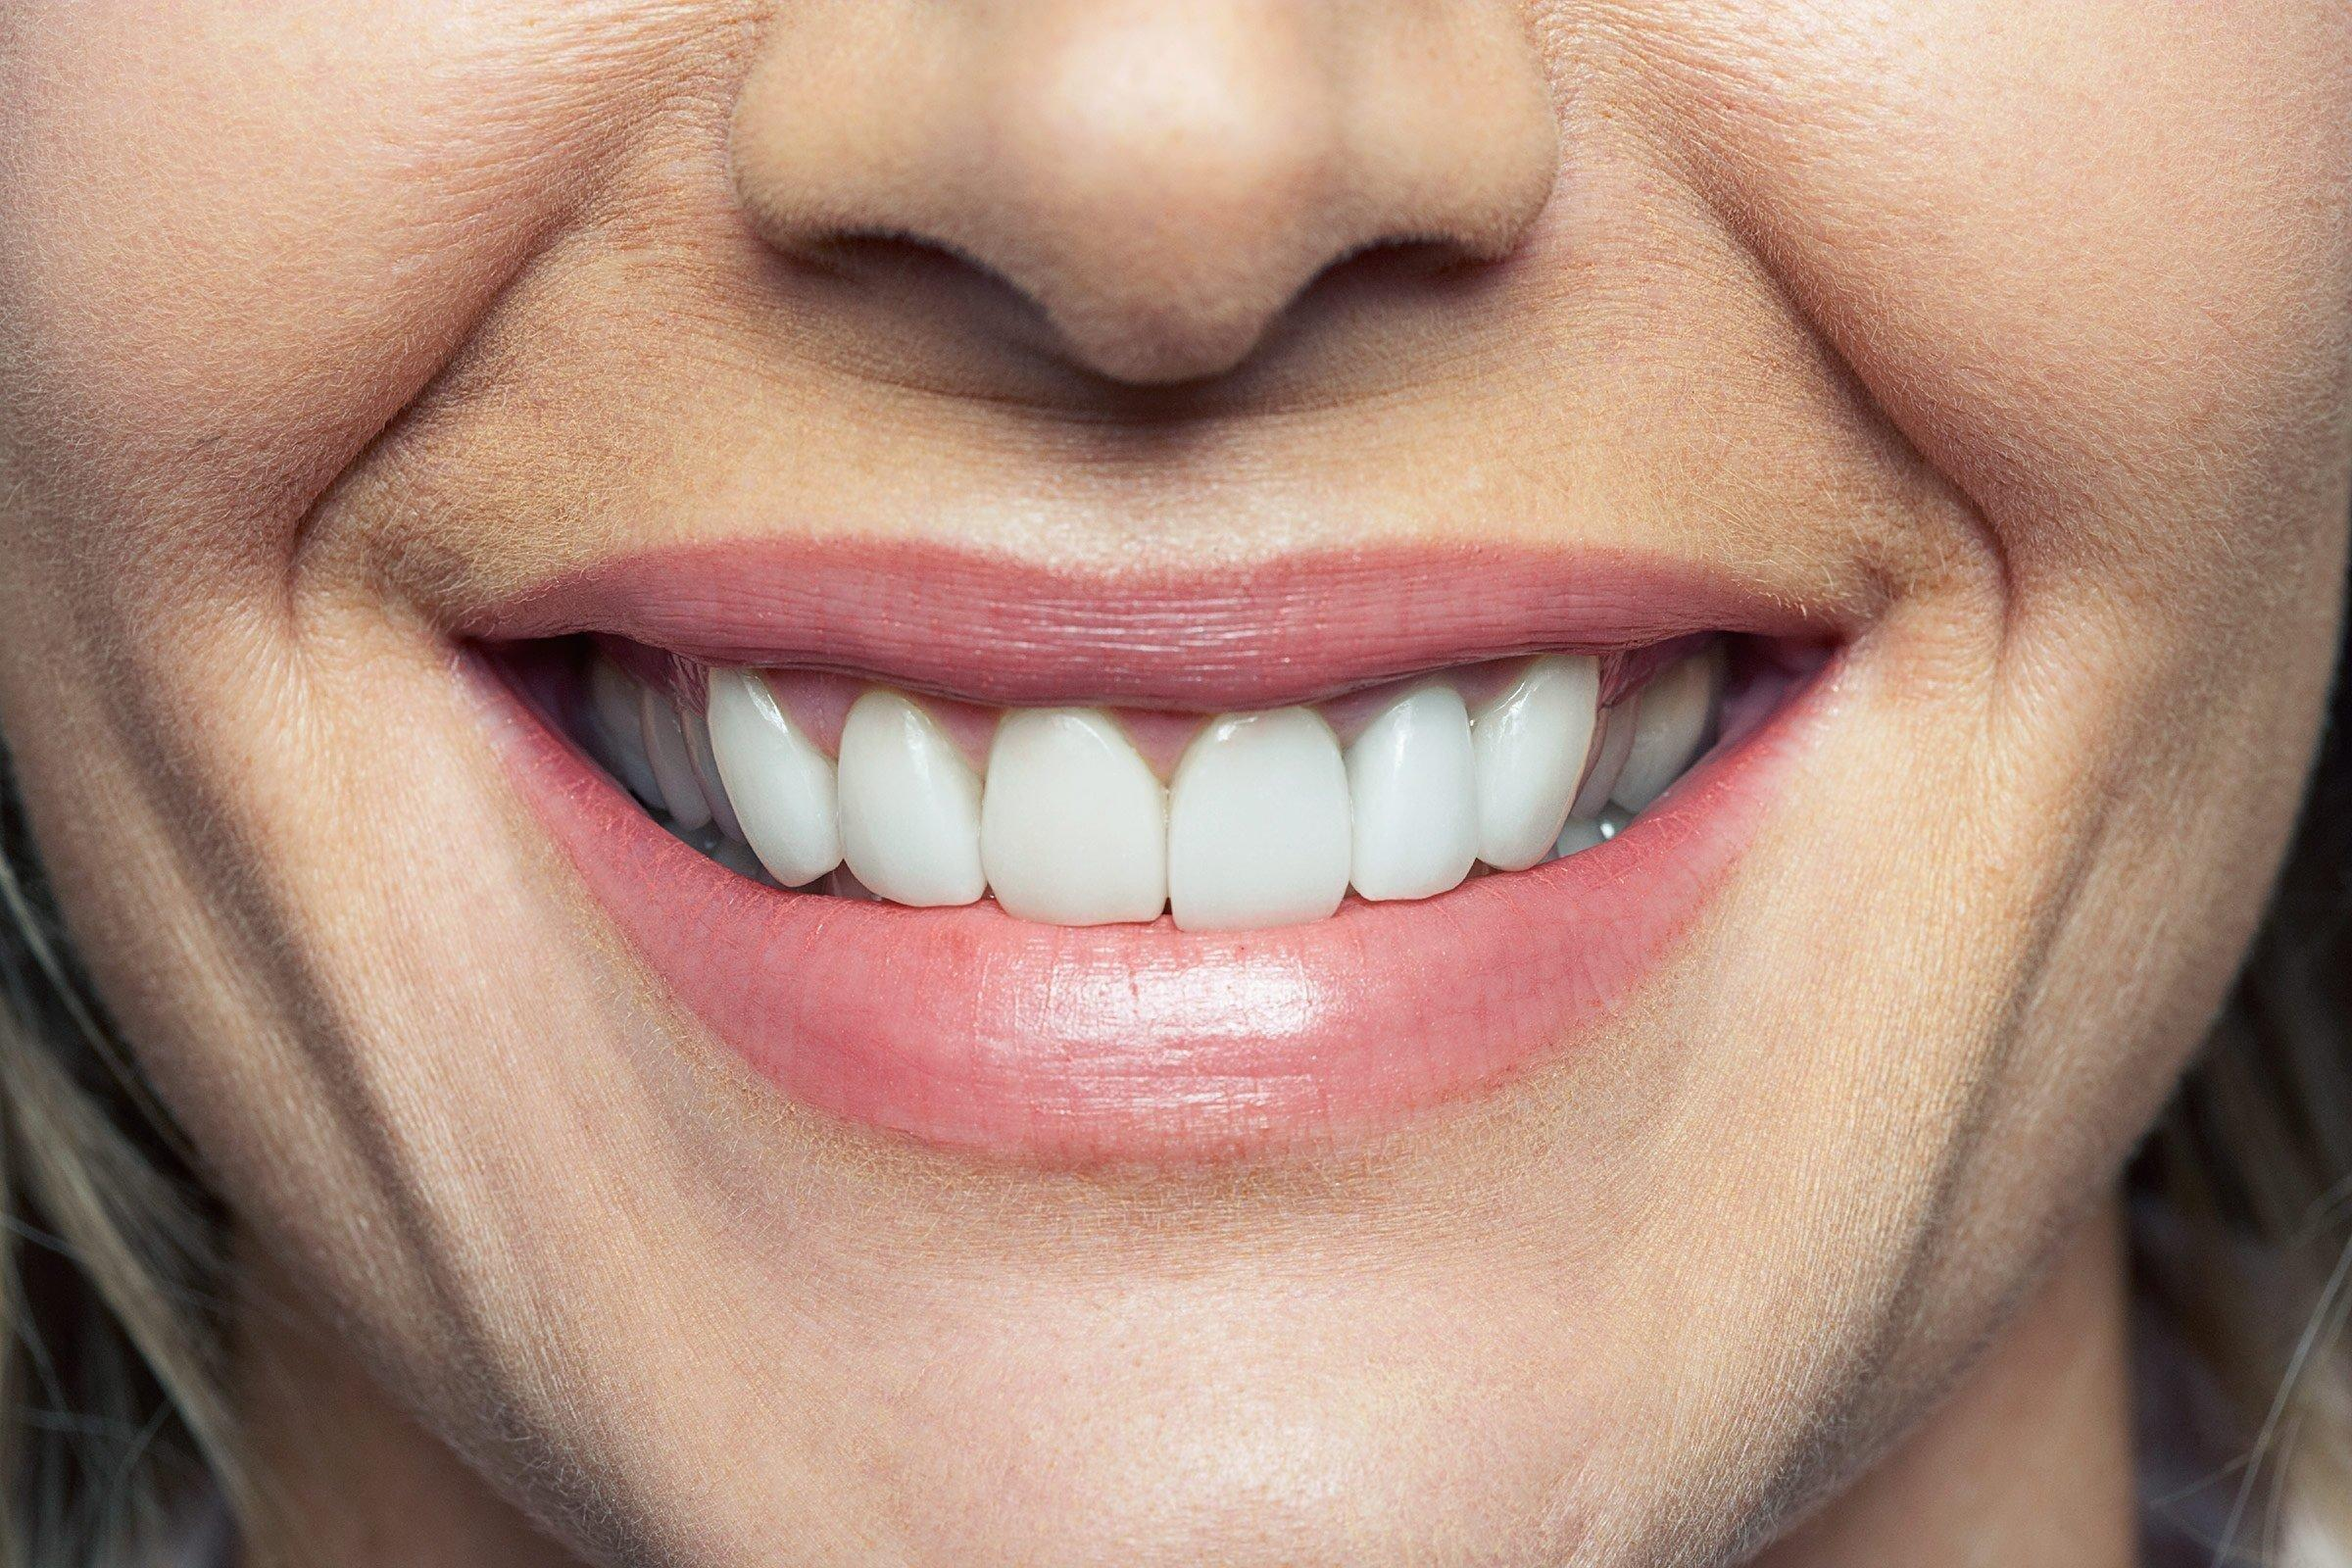 7 Signs Of Disease Your Teeth Can Reveal